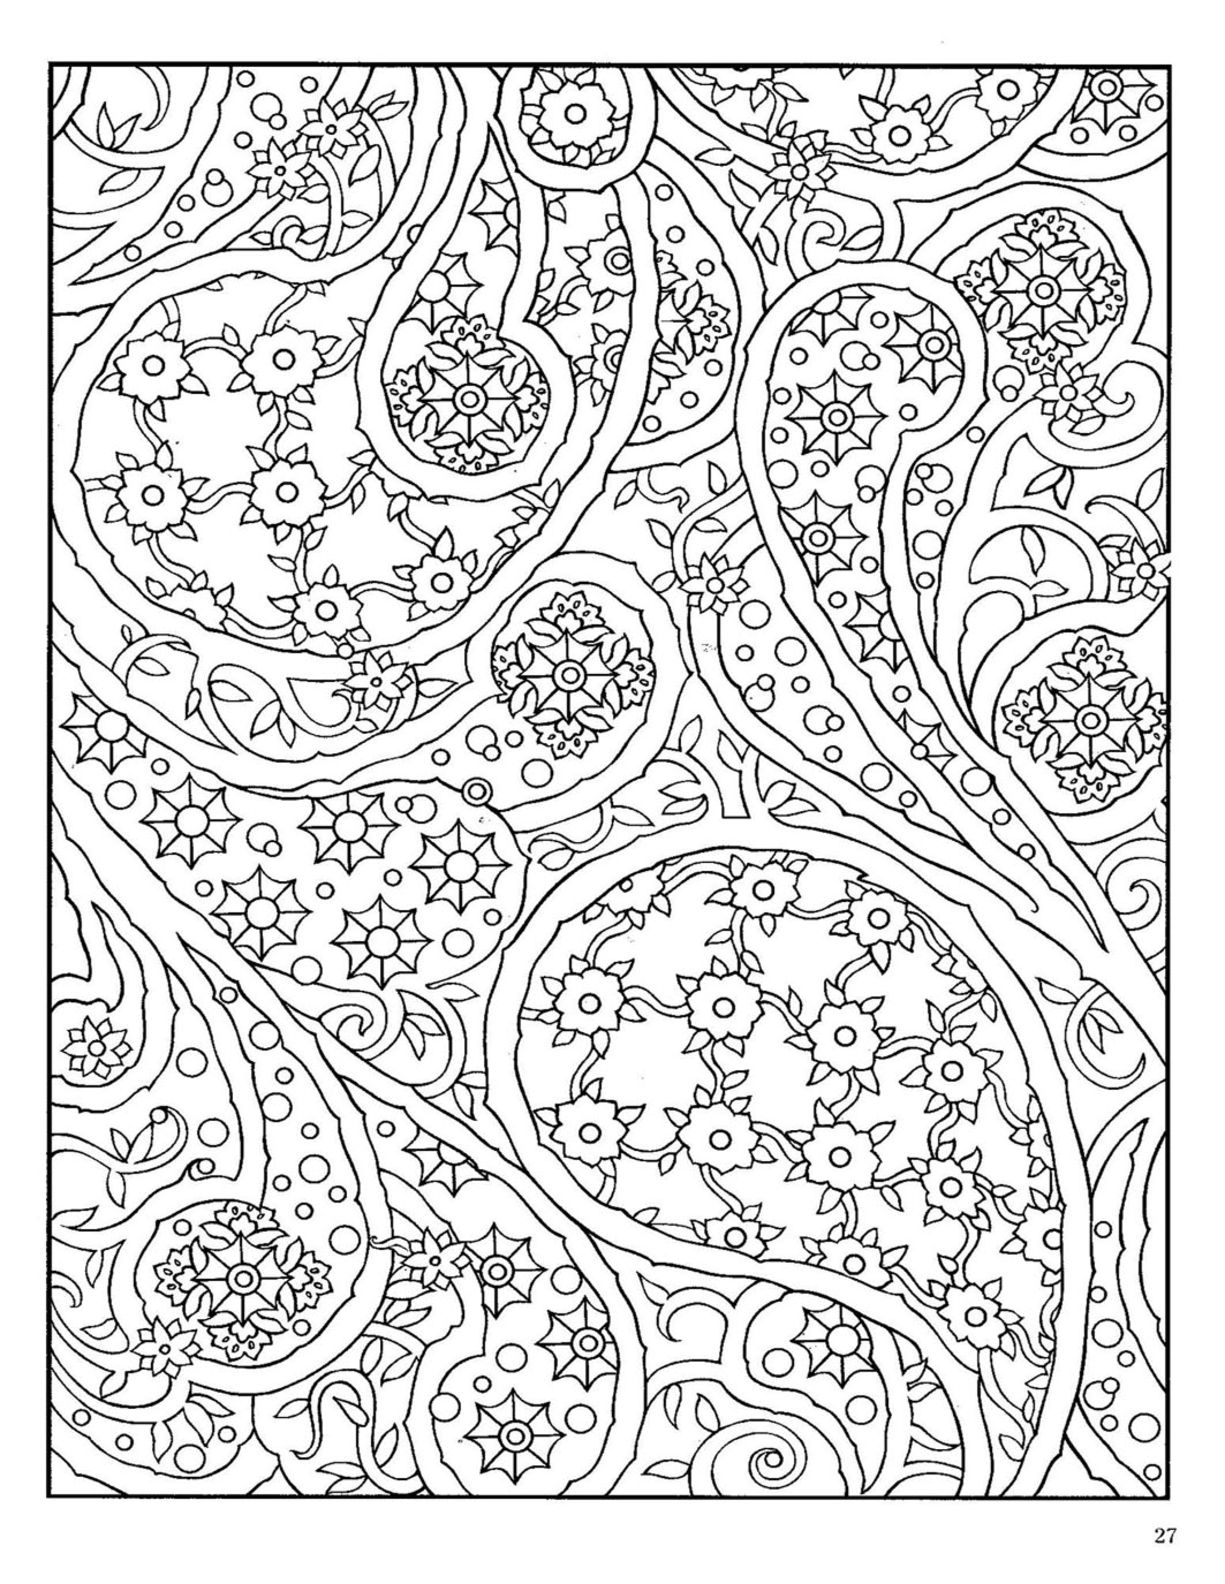 Dover Paisley Designs Coloring Book | sentangle ;) | Pinterest ...